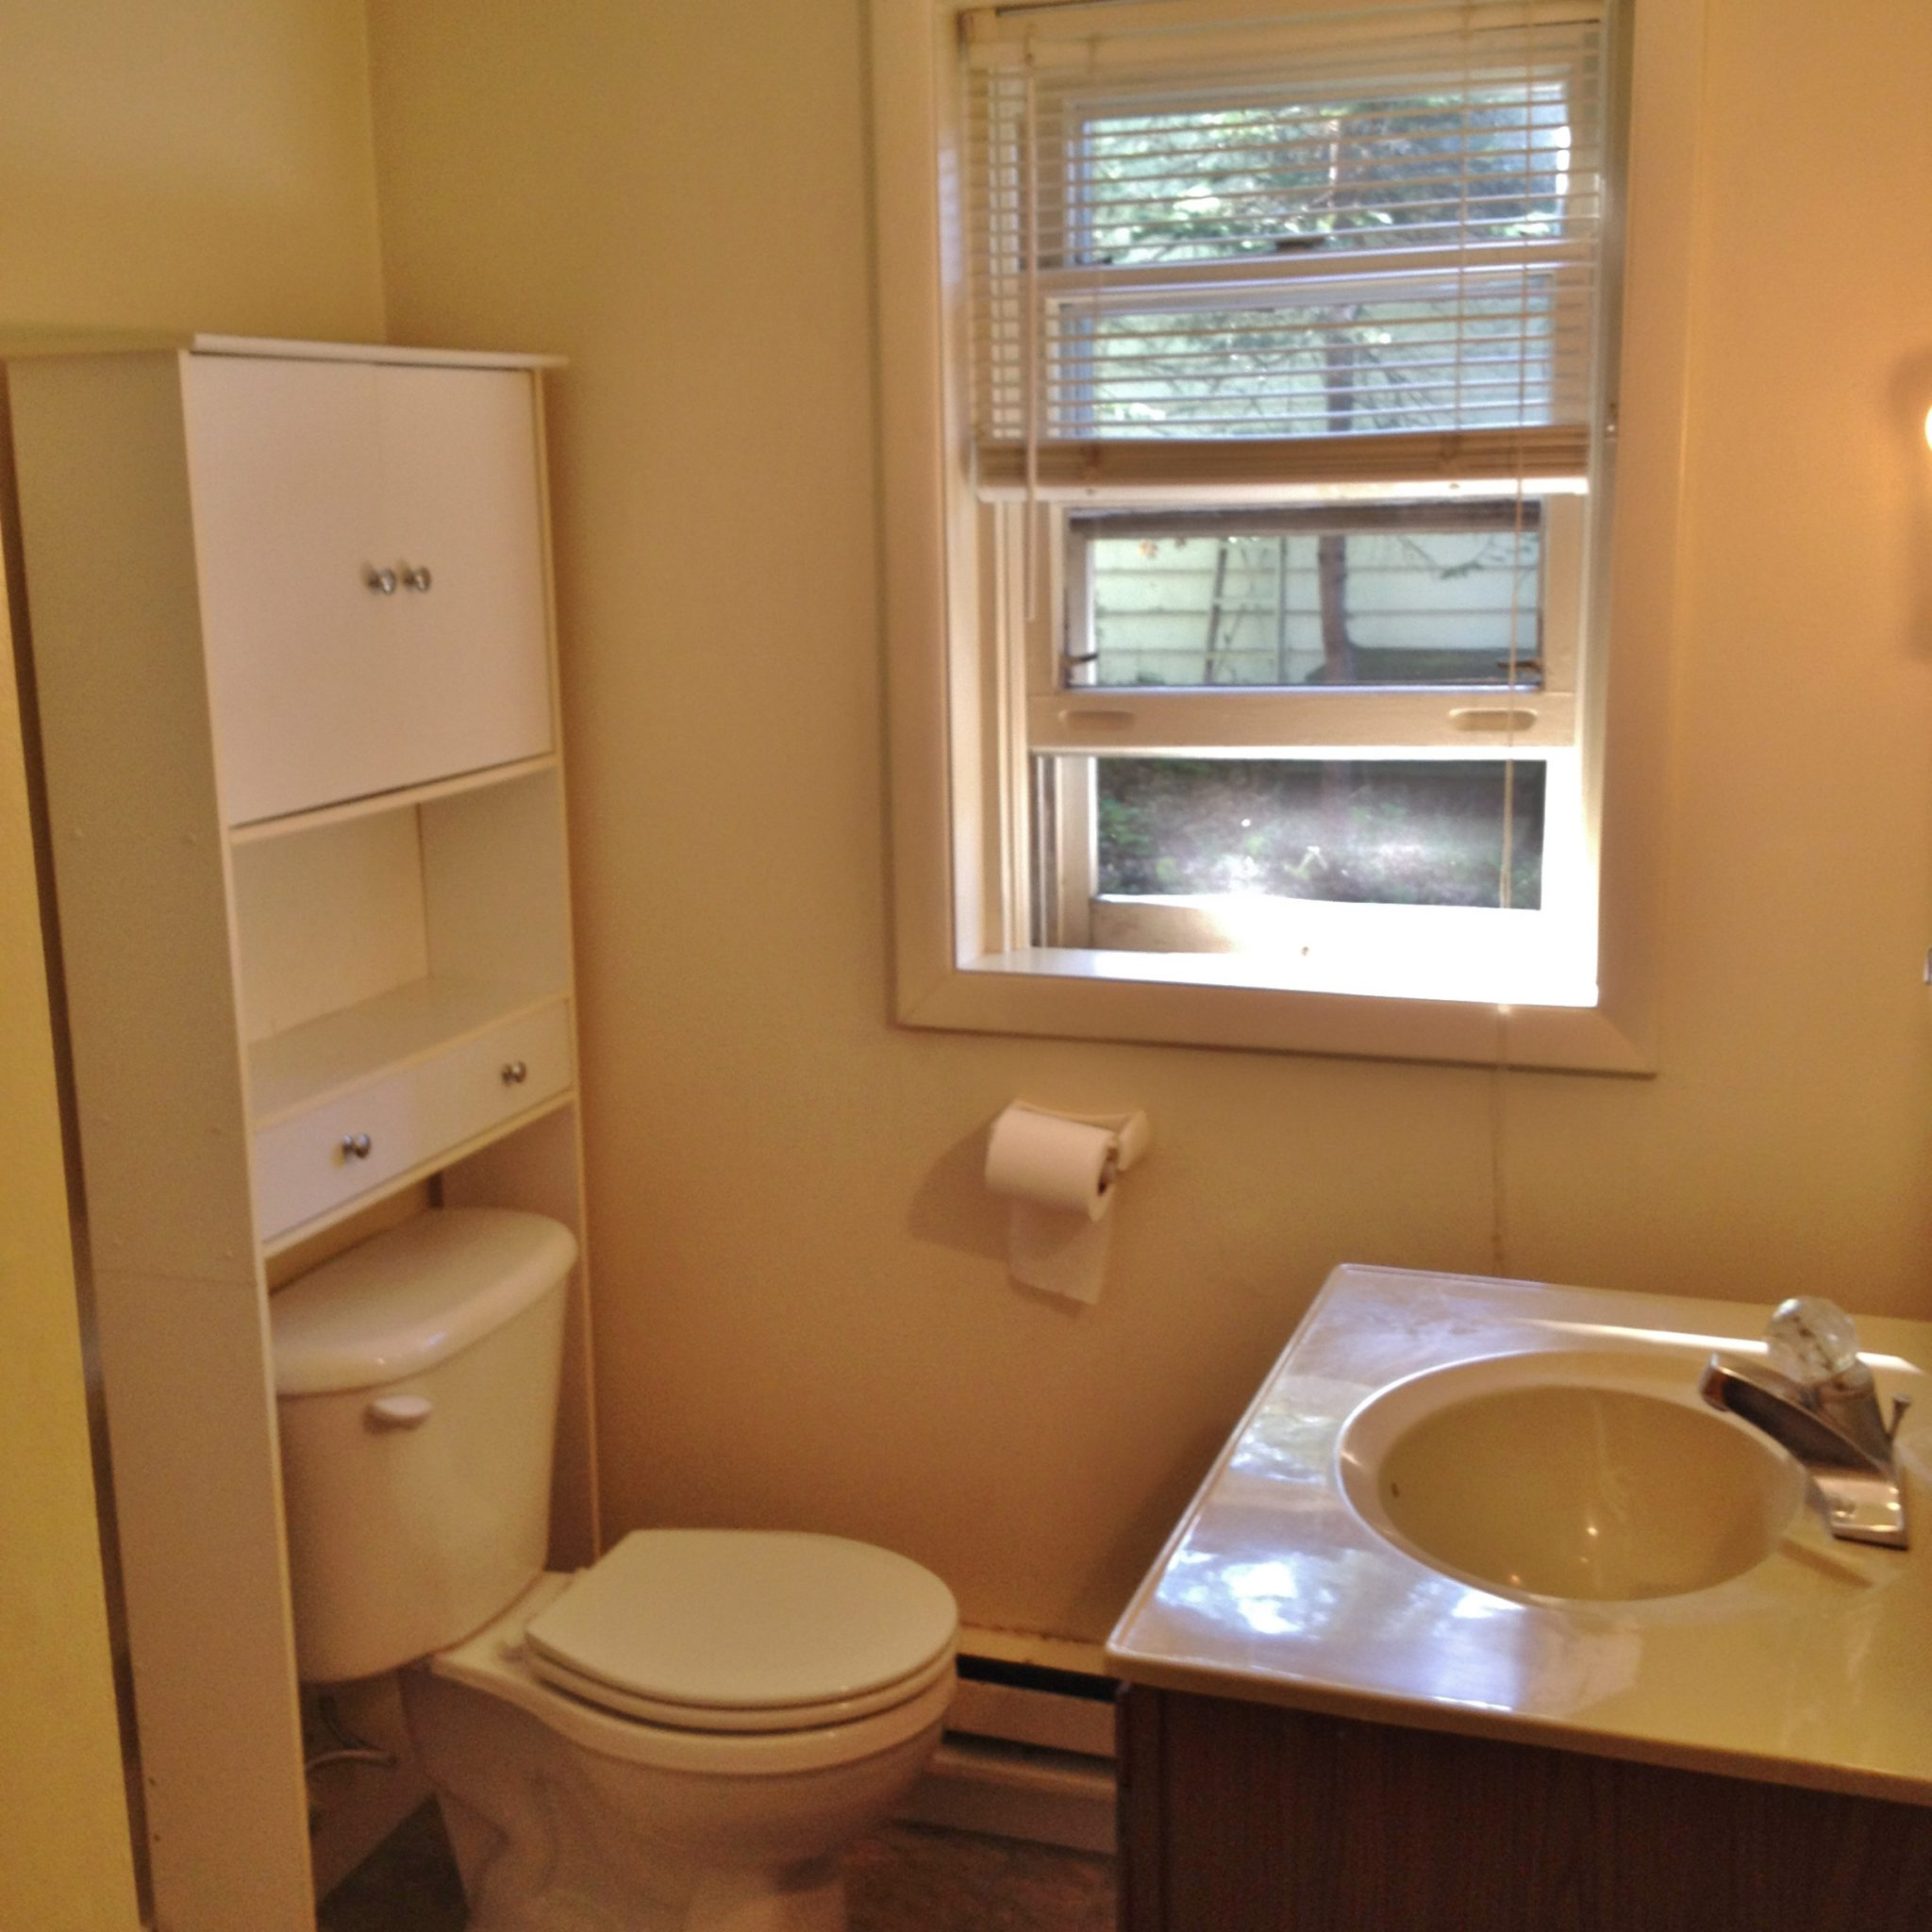 Bathroom photo of the 921 Taylor Street apartment.